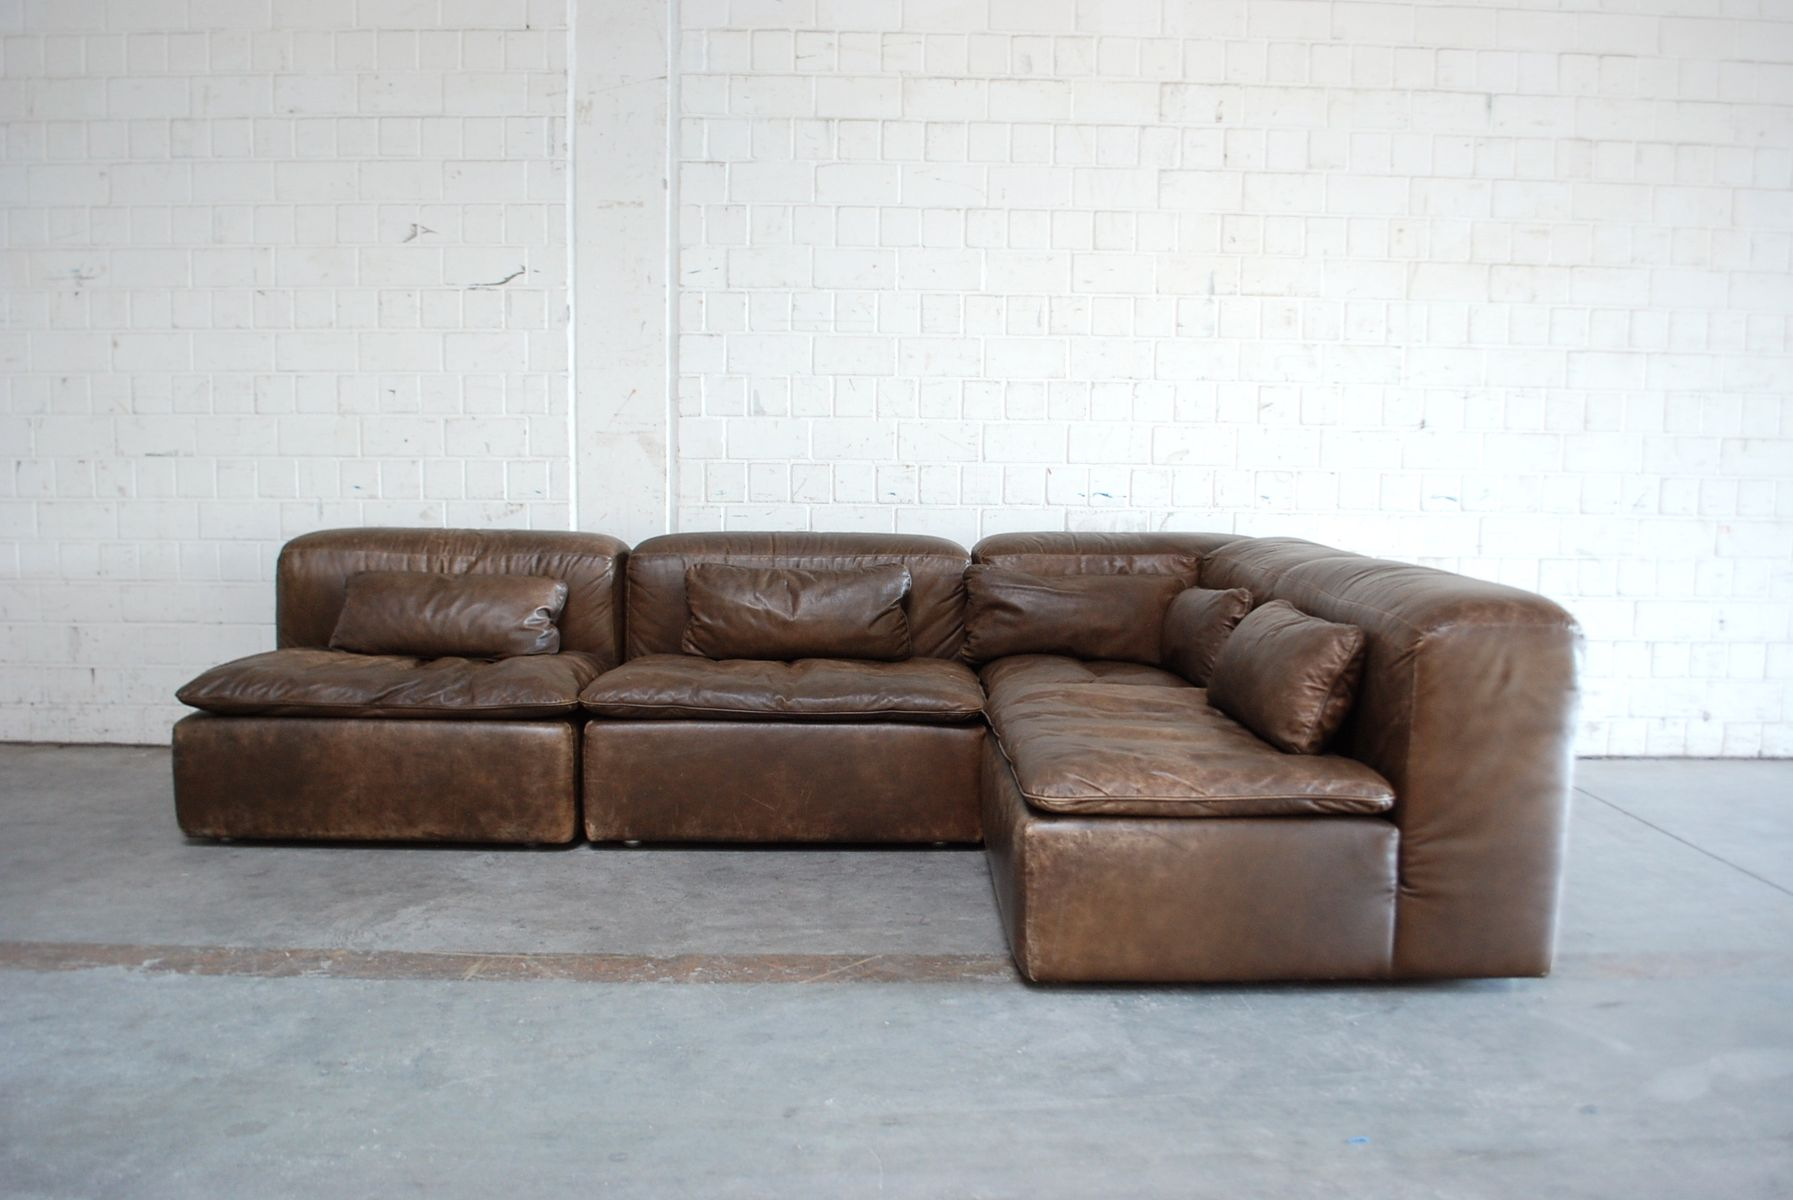 M bel sofa - Mobel martin couch ...